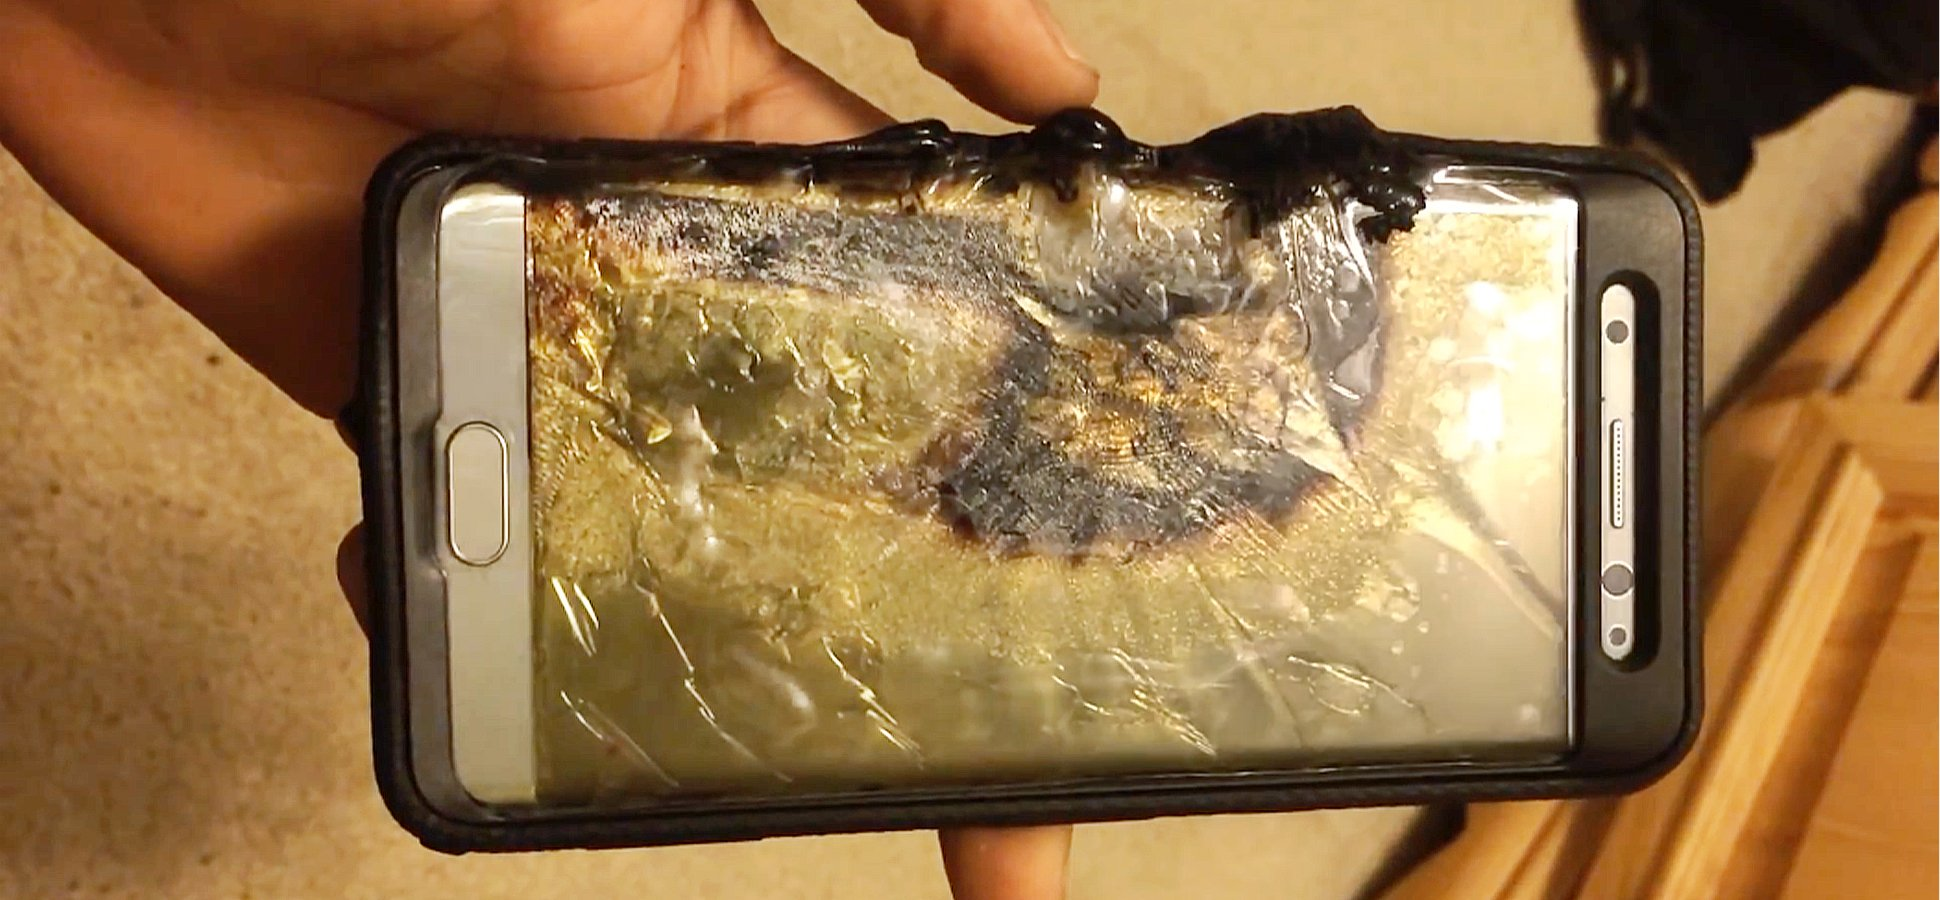 galaxy note7 samsung smartphoe phablet device